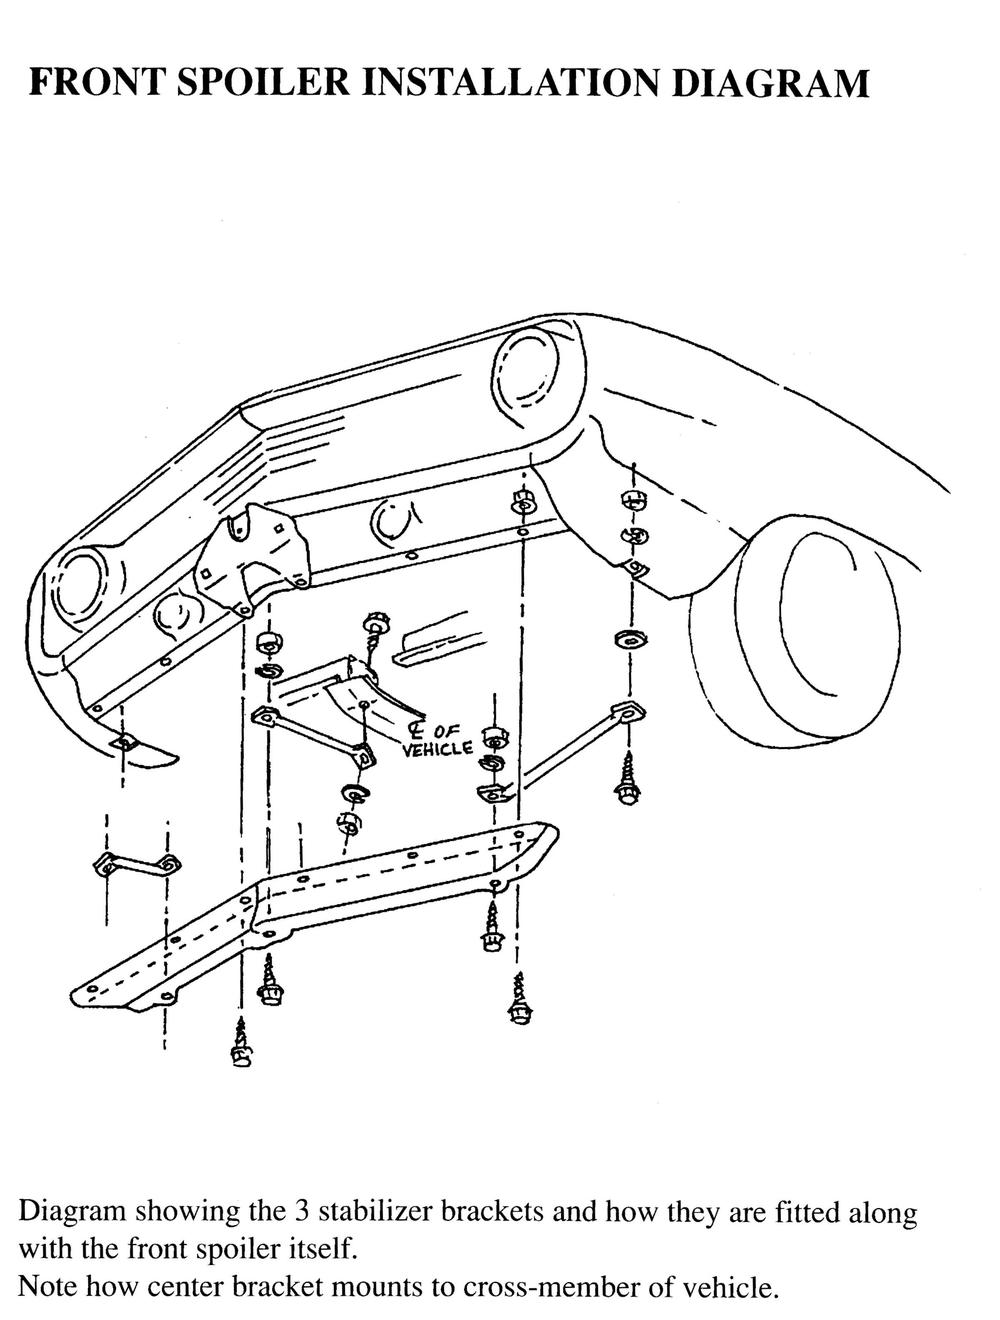 1967 Camaro Heater Wiring Diagram Nice Place To Get 68 Console Technical Blog For Part Installation Steve S Camaros Rh Stevescamaroparts Com Pdf 67 Schematic